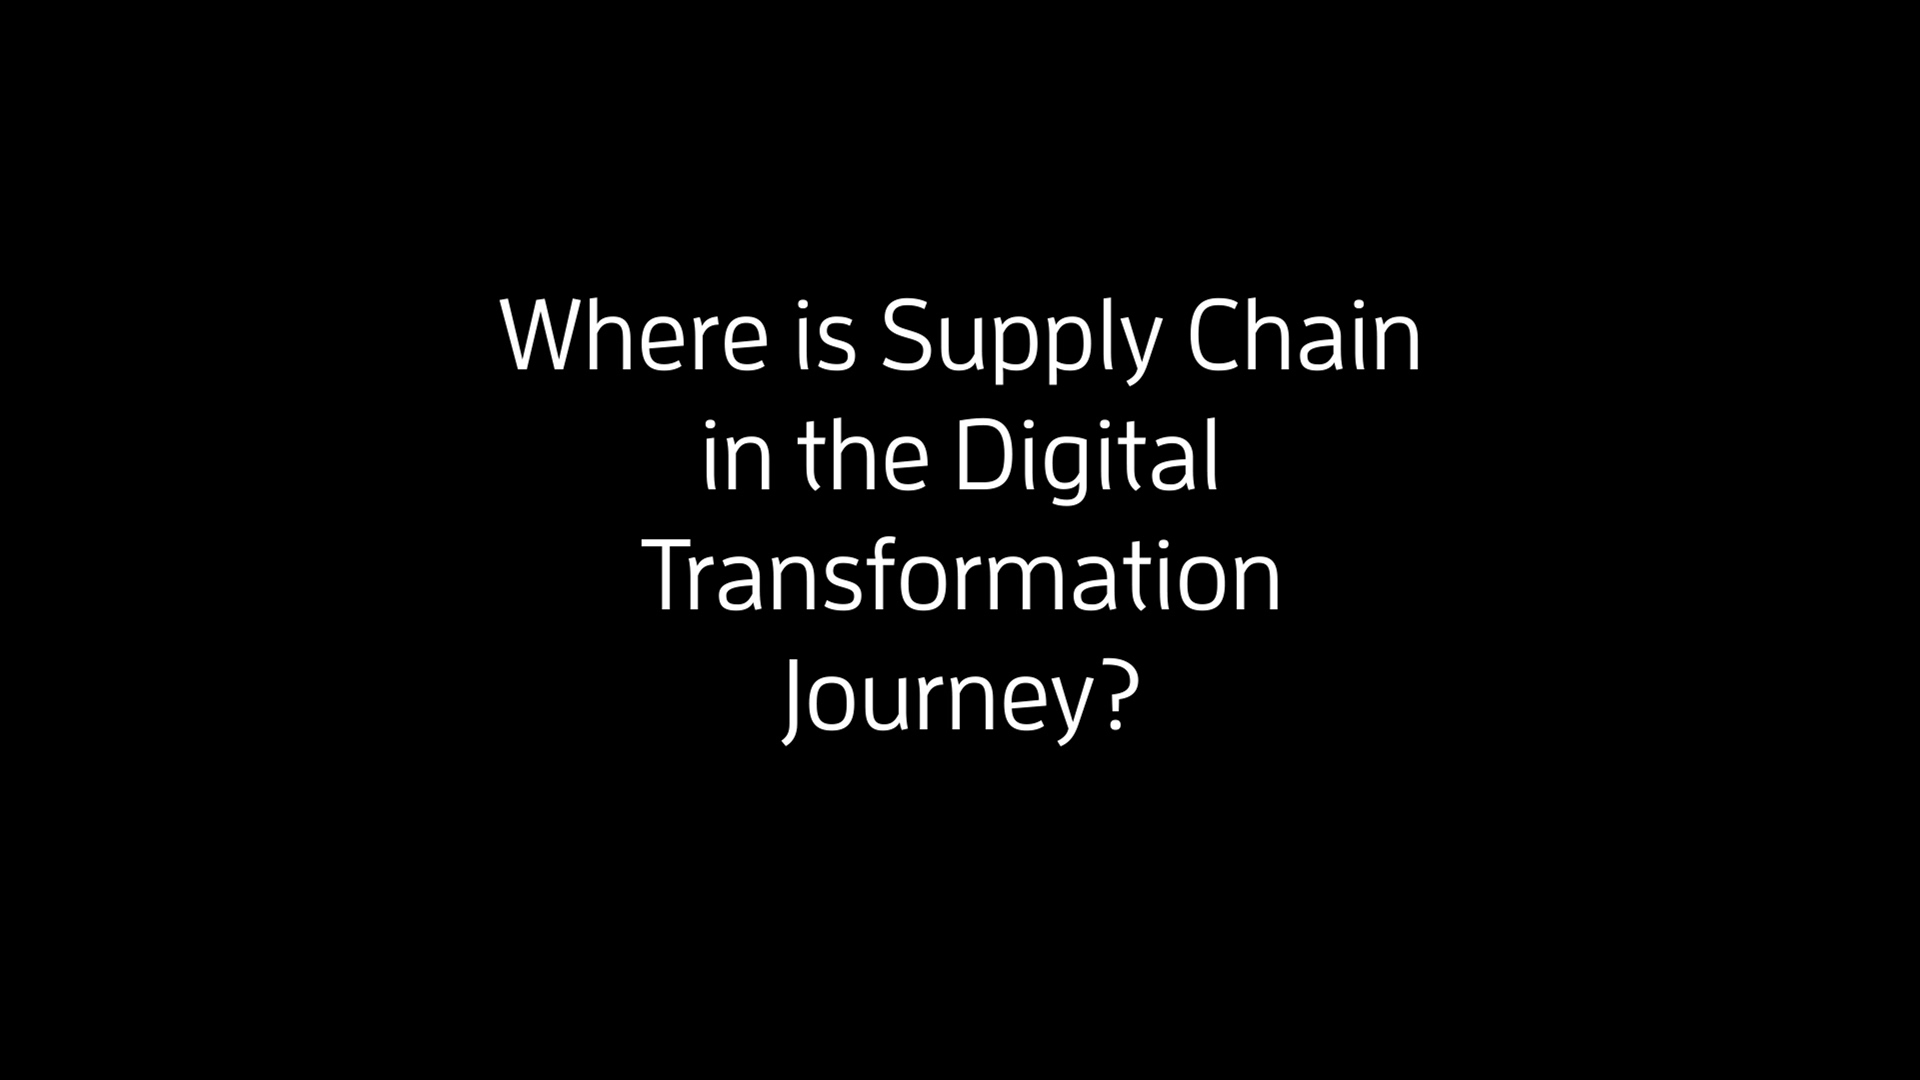 Digital Transformation of Supply Chains - Where is SC in the Dig. Trans. Journey